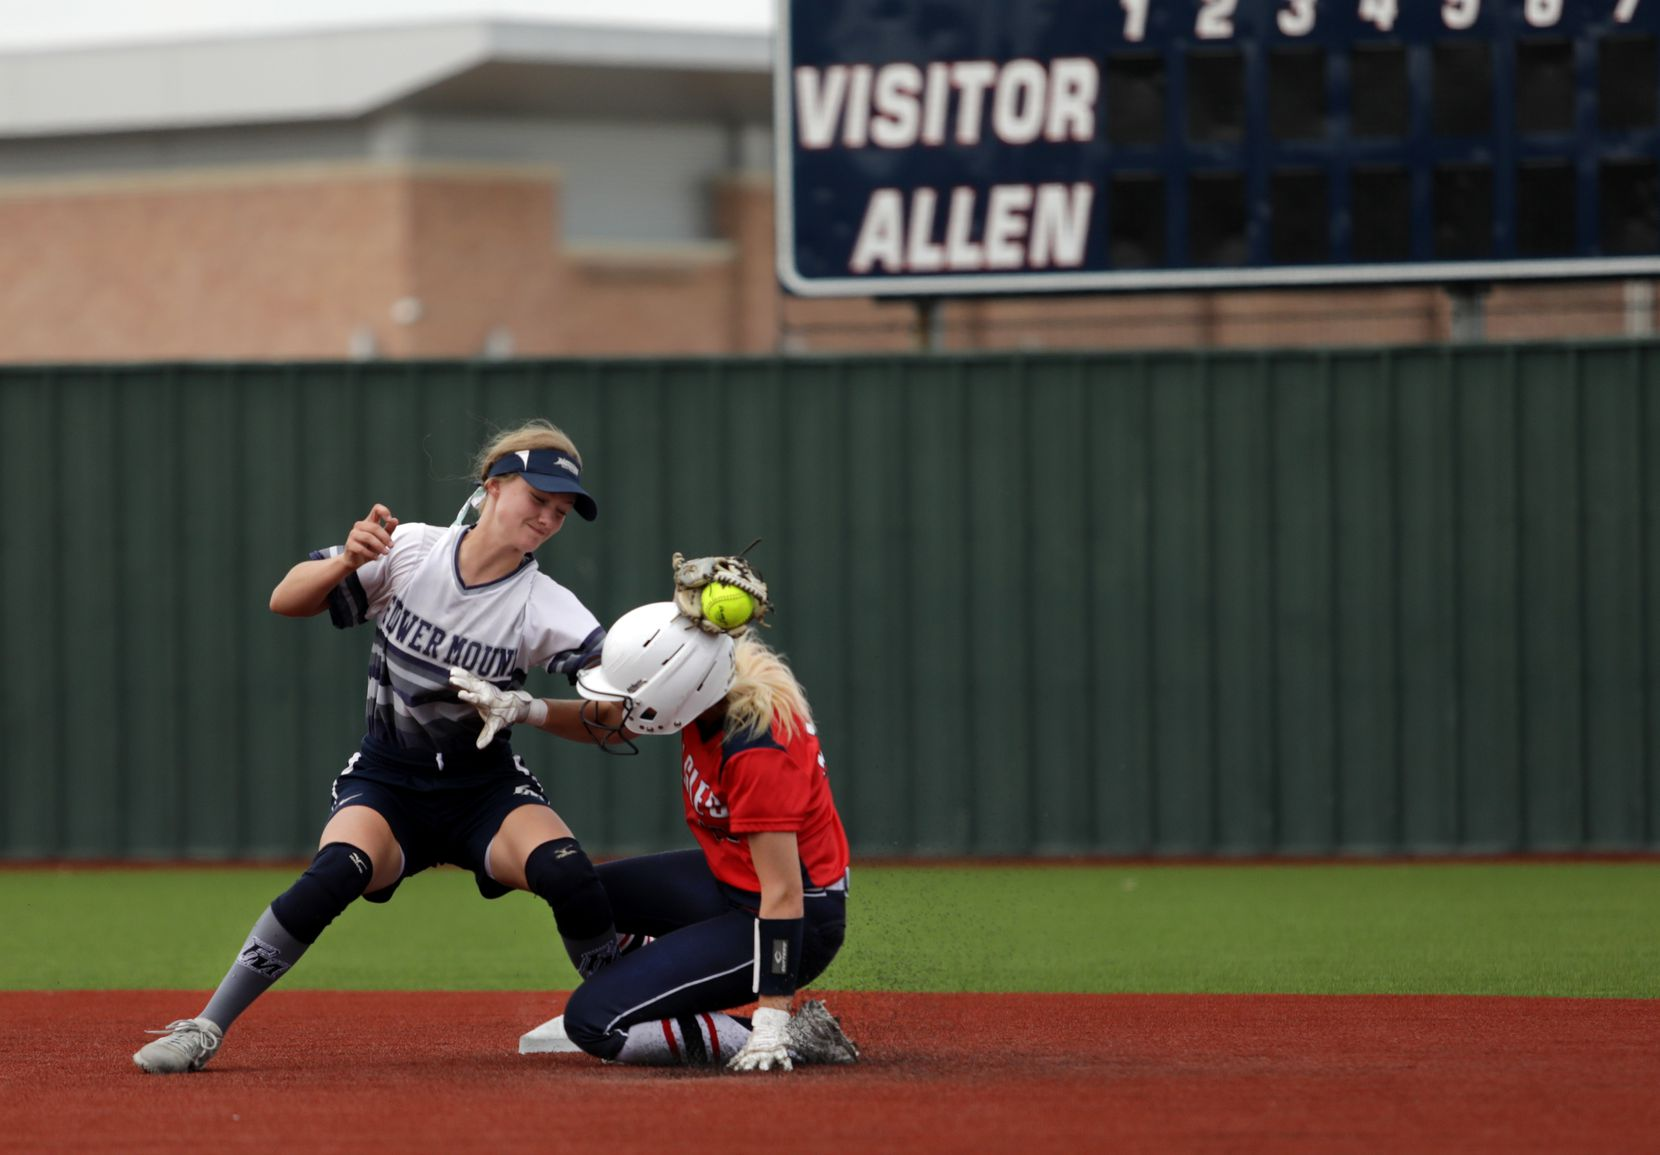 Flower Mound High School player #6, McKenna Andrews, tries to stop Allen High School player #13, Maddie Slaughter, from taking second base during a softball playoff game at Allen High School in Allen, TX, on May 15, 2021. (Jason Janik/Special Contributor)